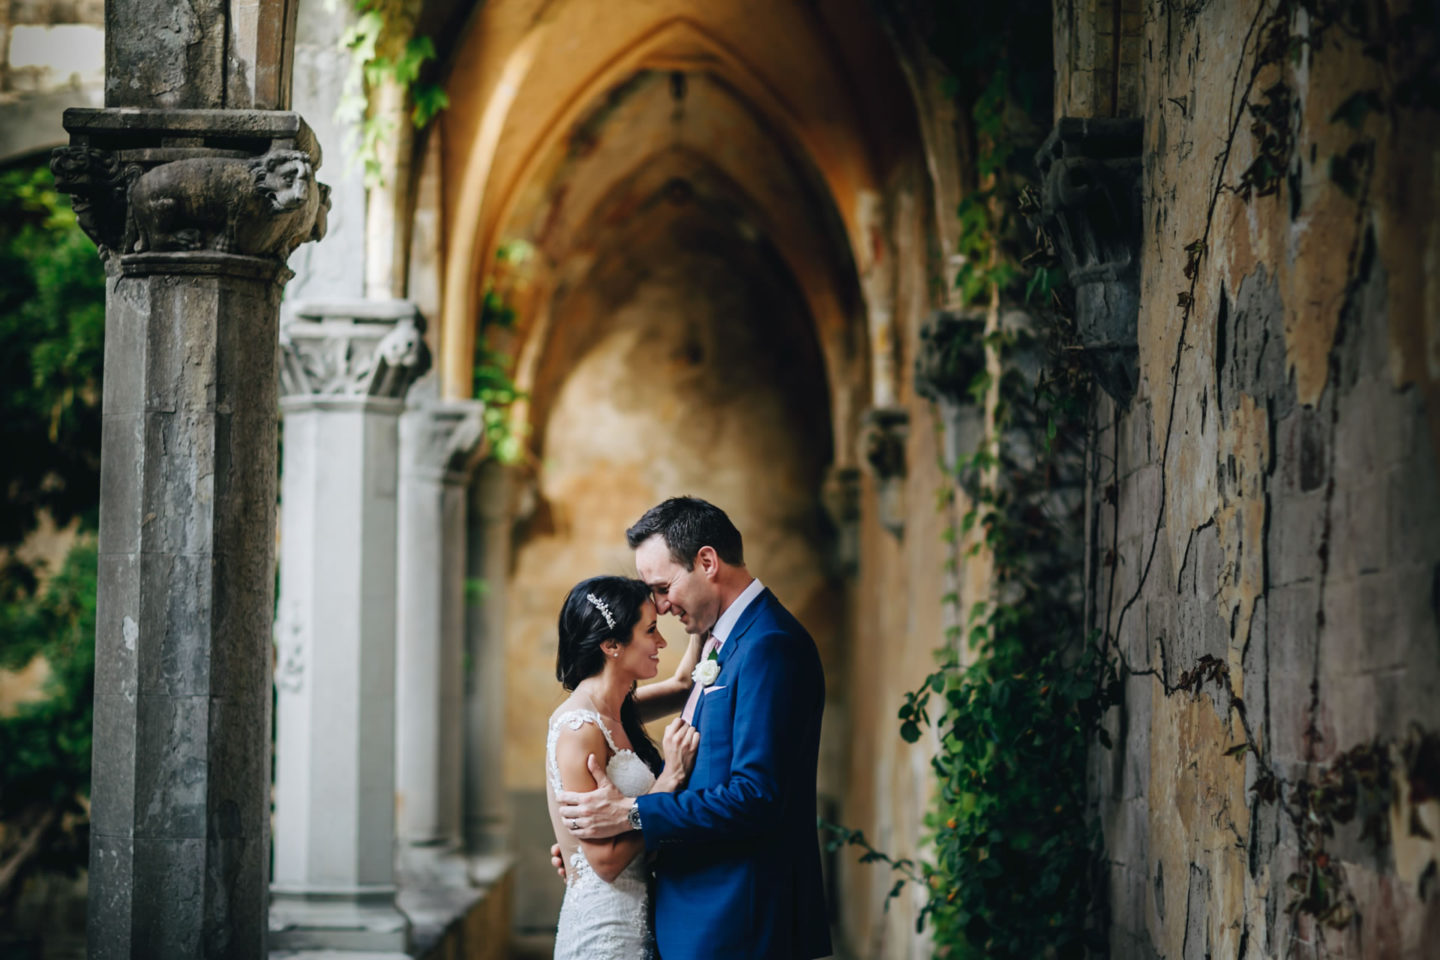 Together :: Crazy wedding at Vincigliata Castle and Villa San Michele :: Luxury wedding photography - 31 :: Together